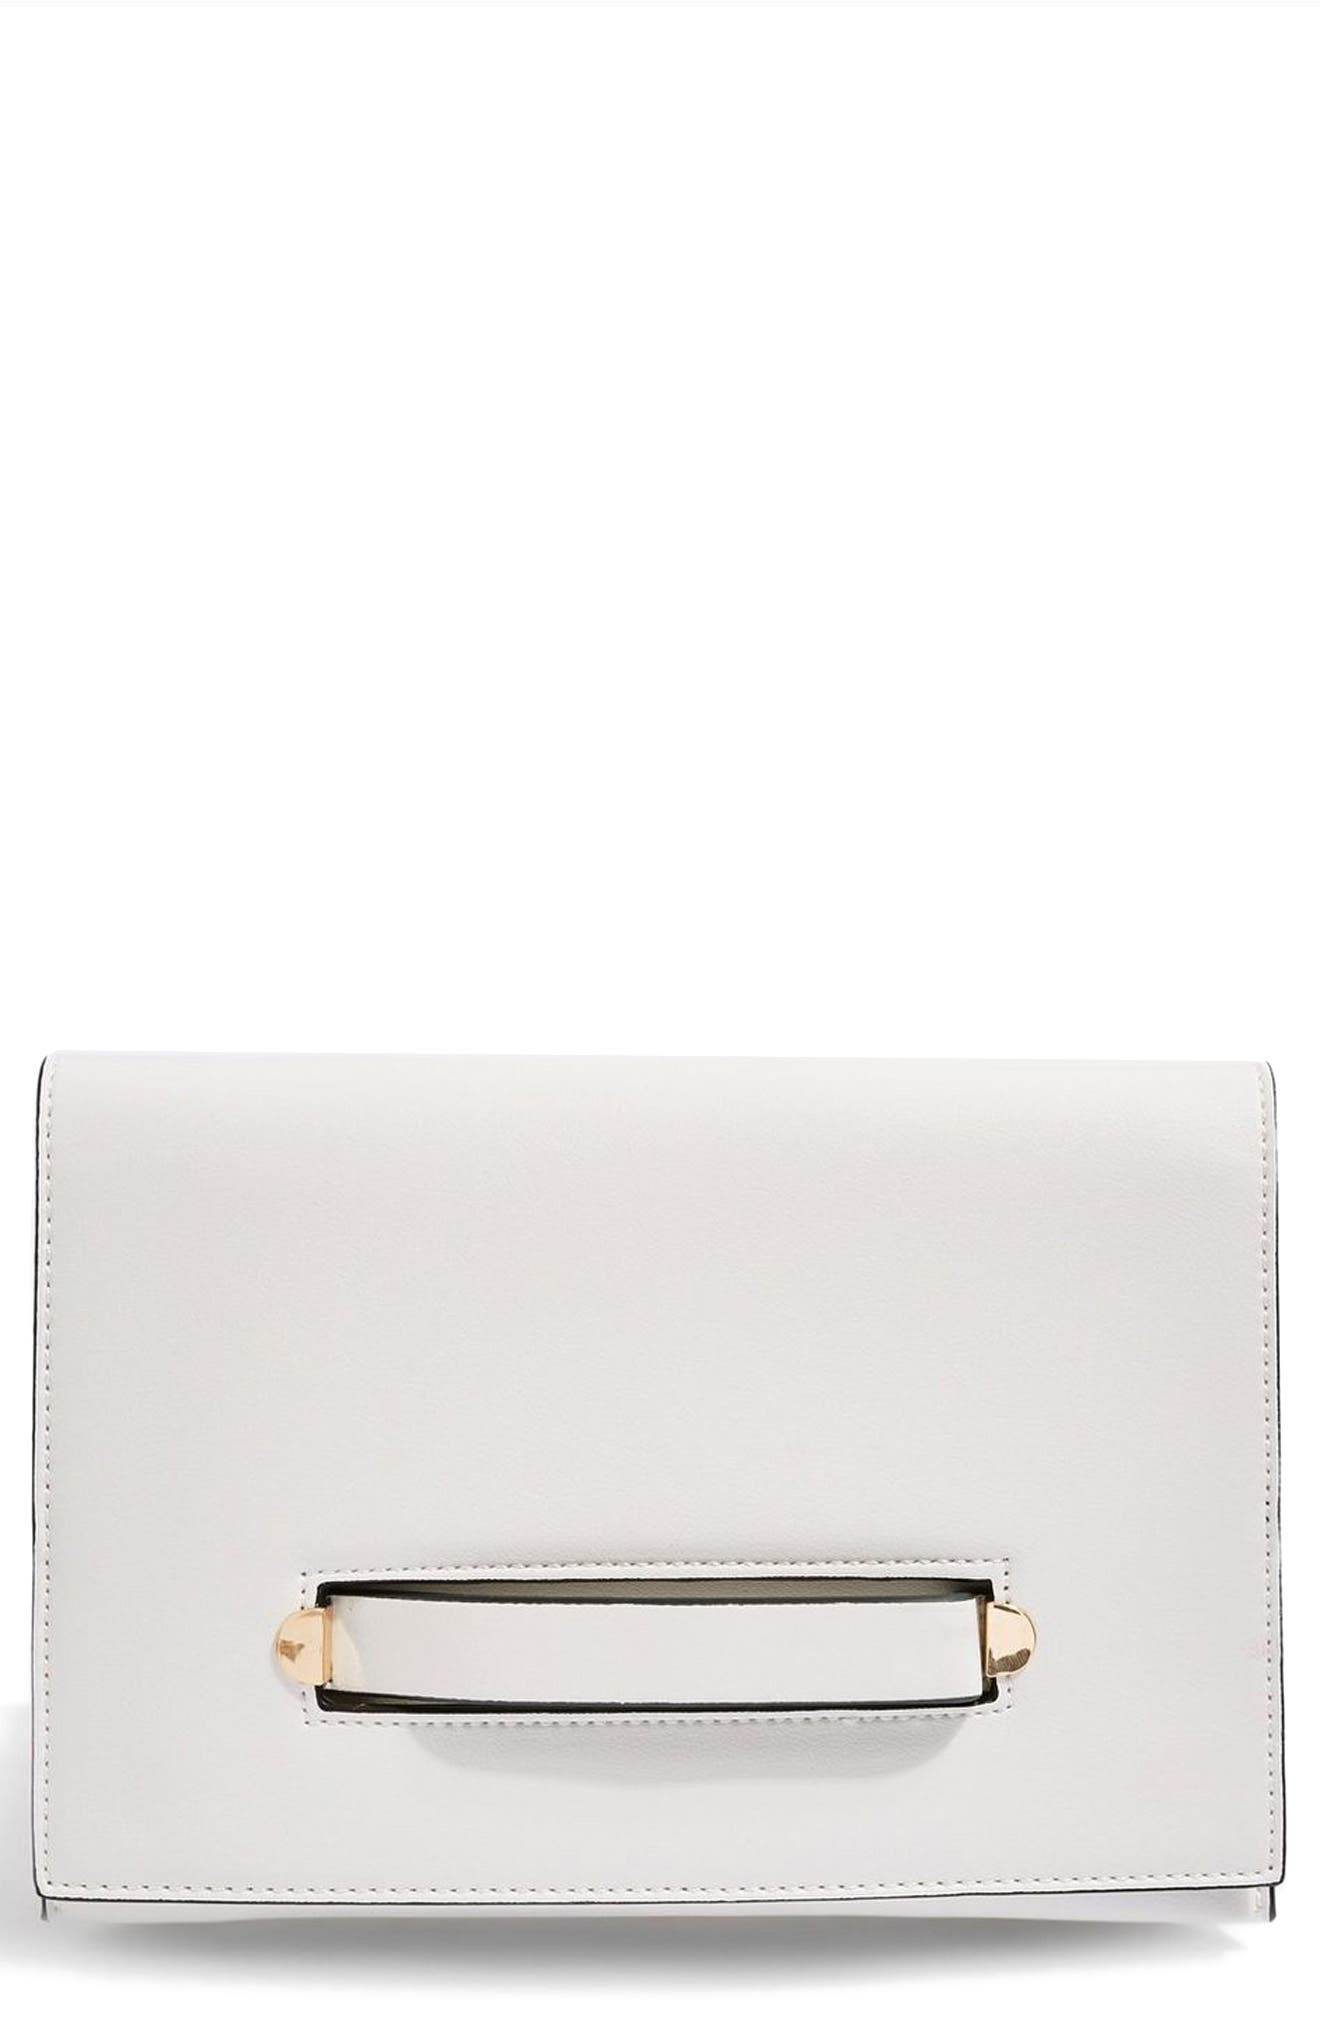 Brogan Tab Chain Clutch Bag,                         Main,                         color, White